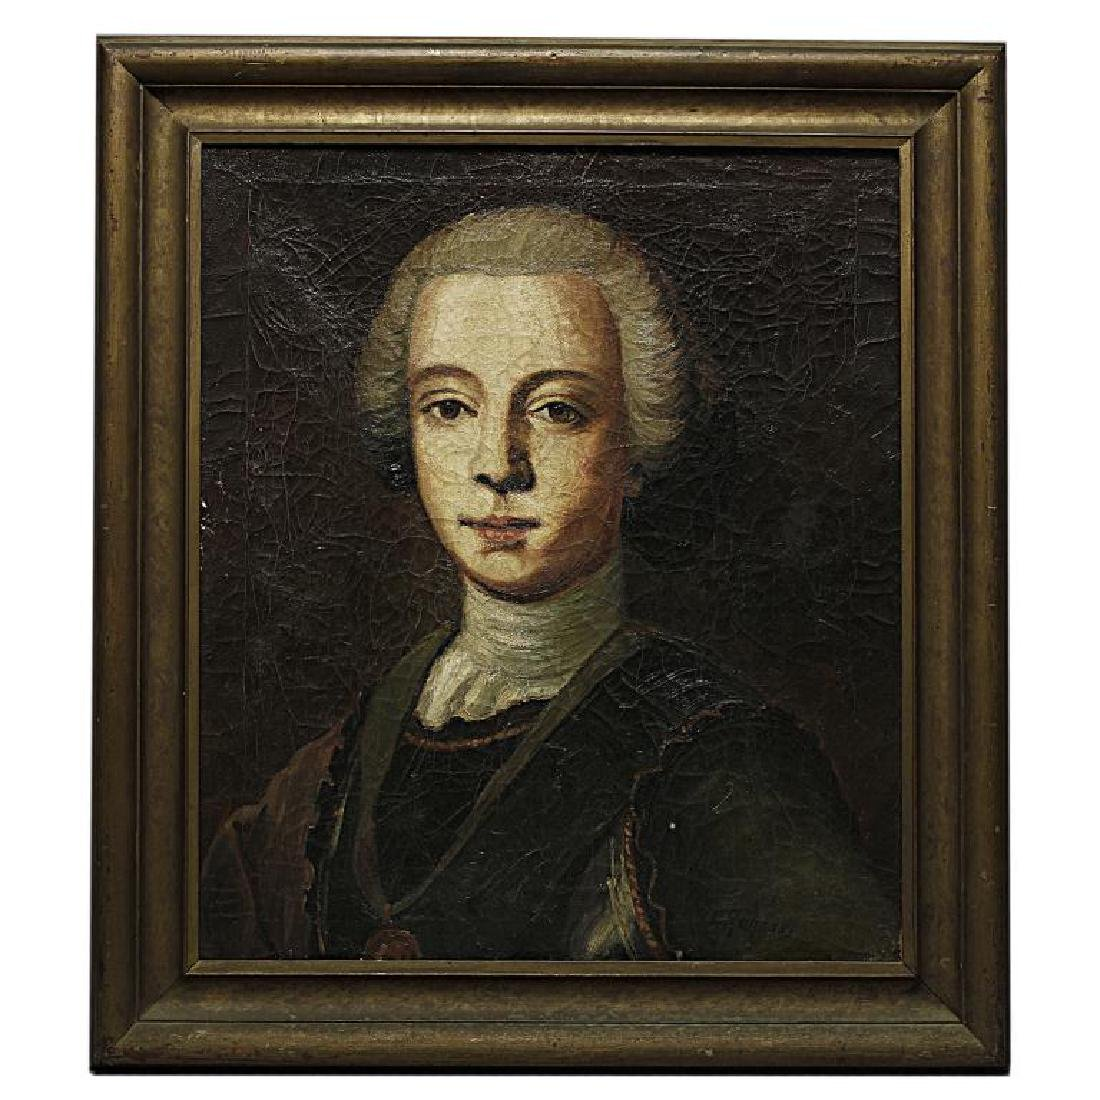 FRAMED PORTRAIT PAINTING OF A YOUNG EUROPEAN MAN